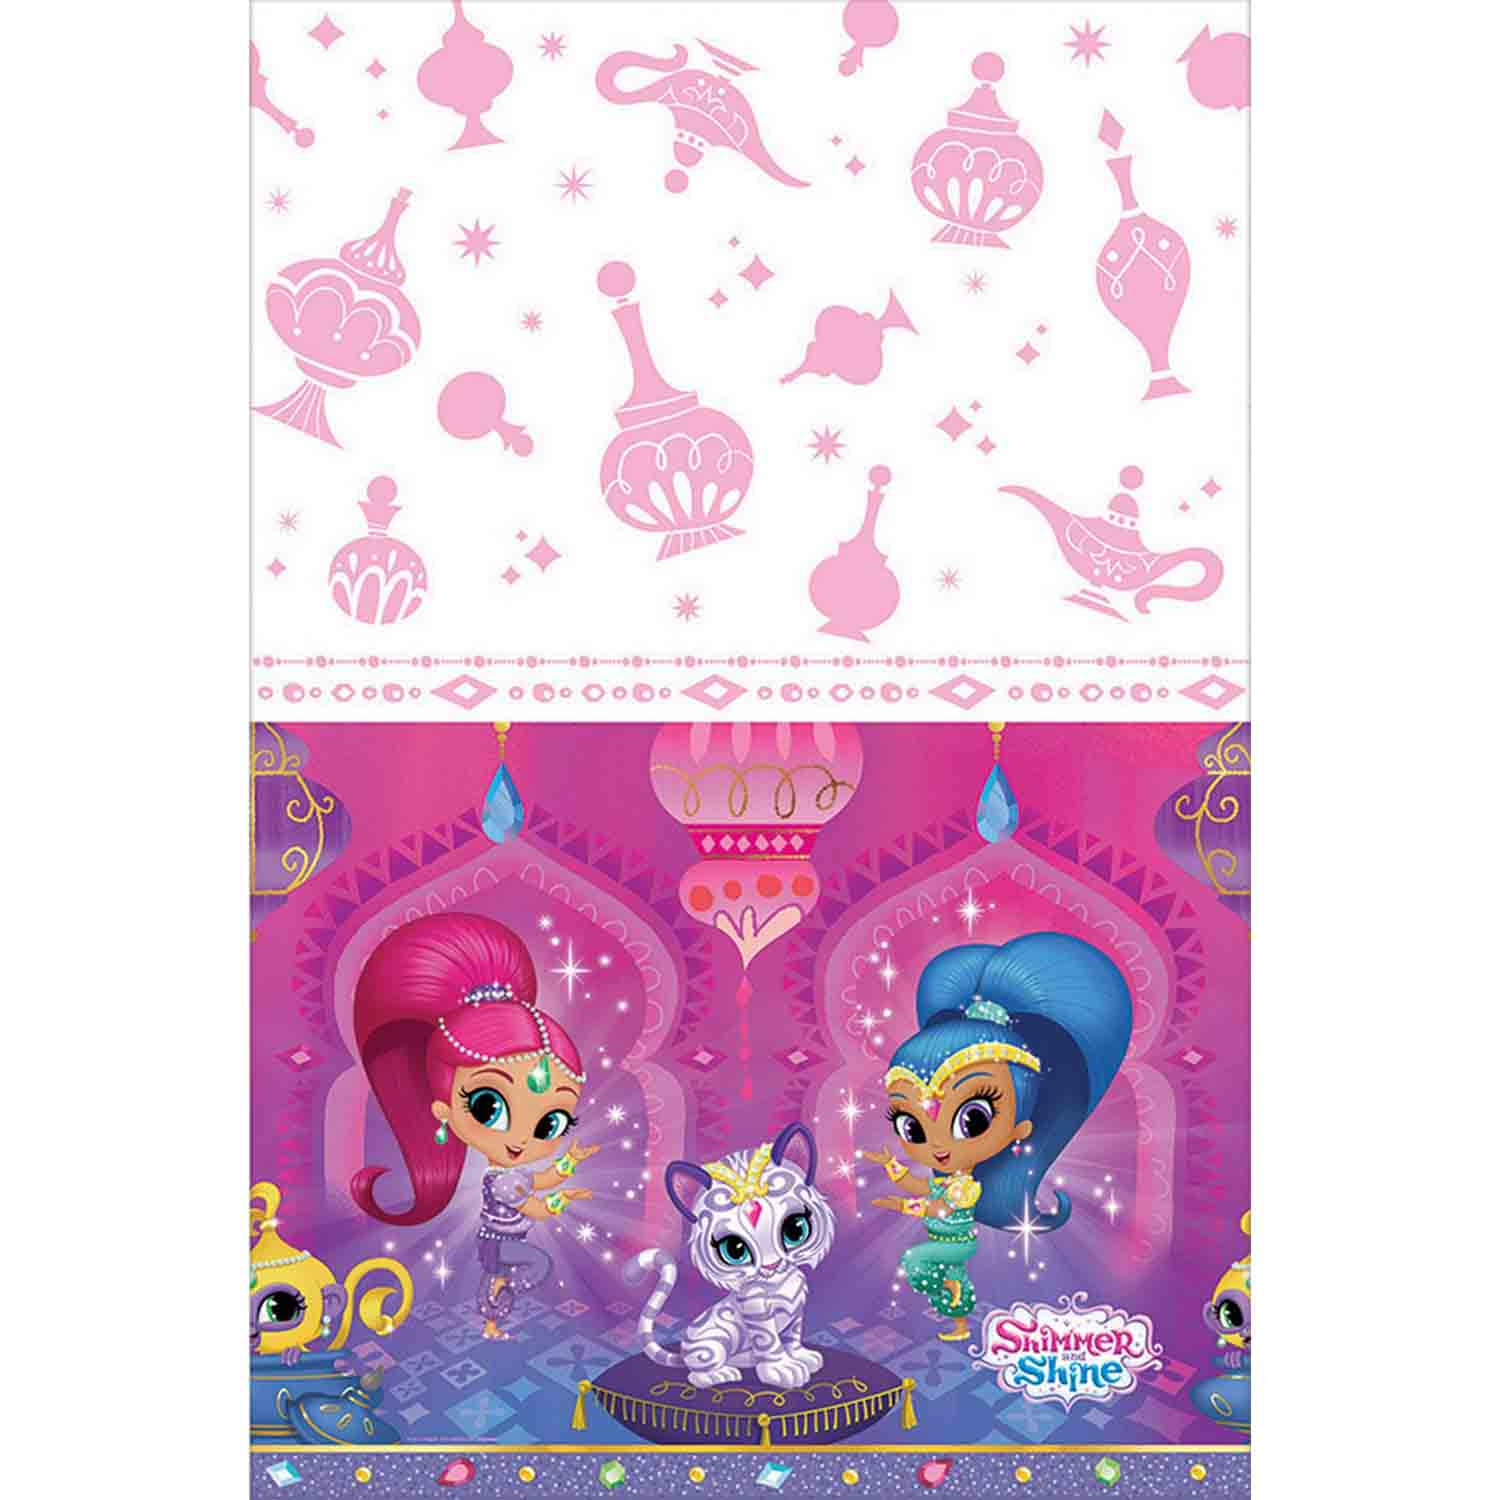 Shimmer and Shine Tablecover Plastic